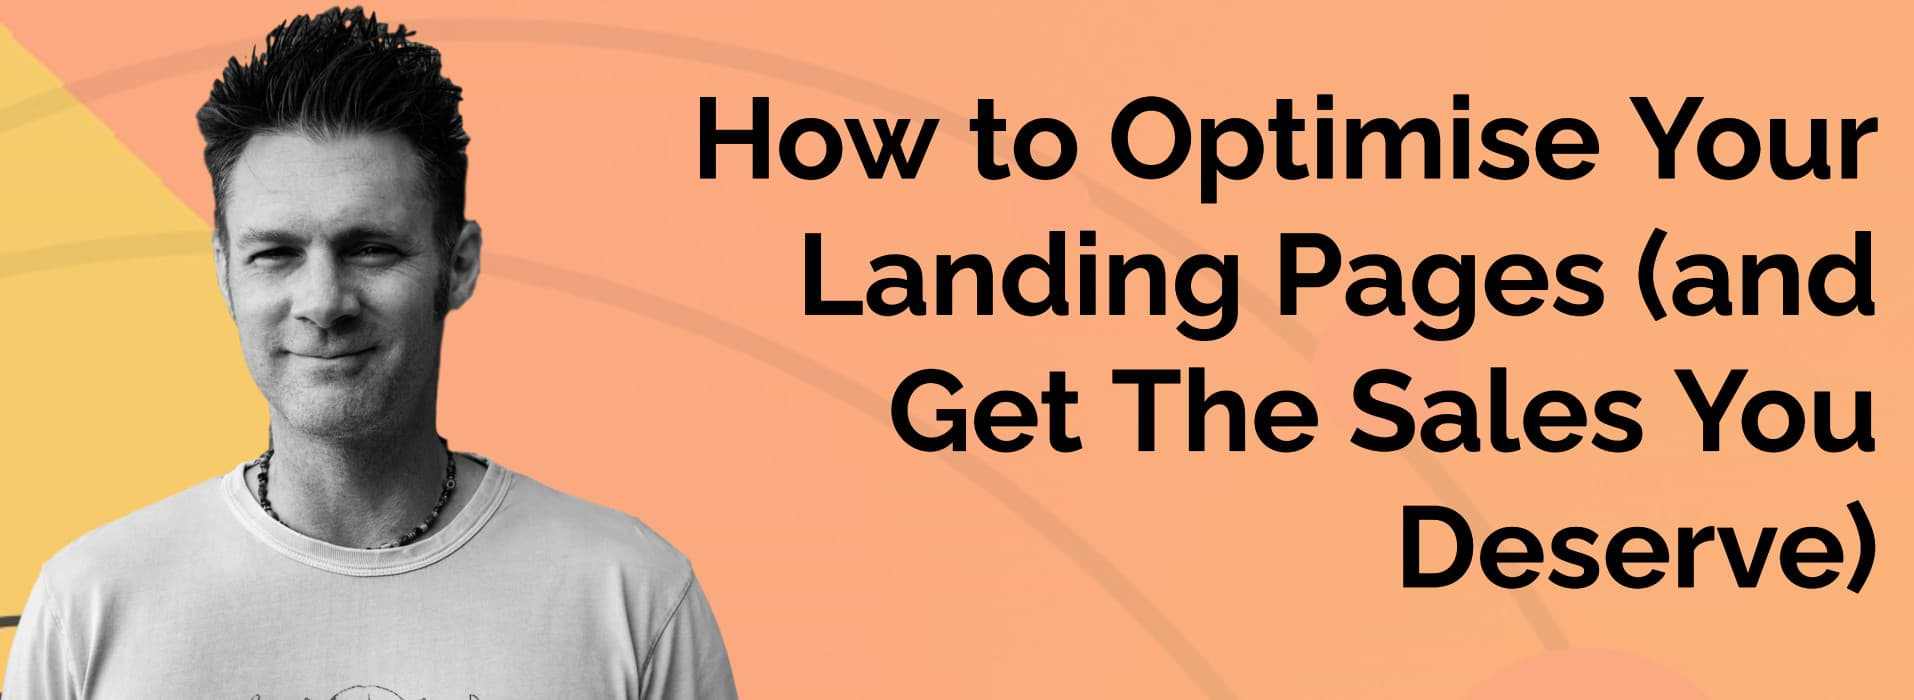 How to Optimise Your Landing Pages (and Get The Sales You Deserve)